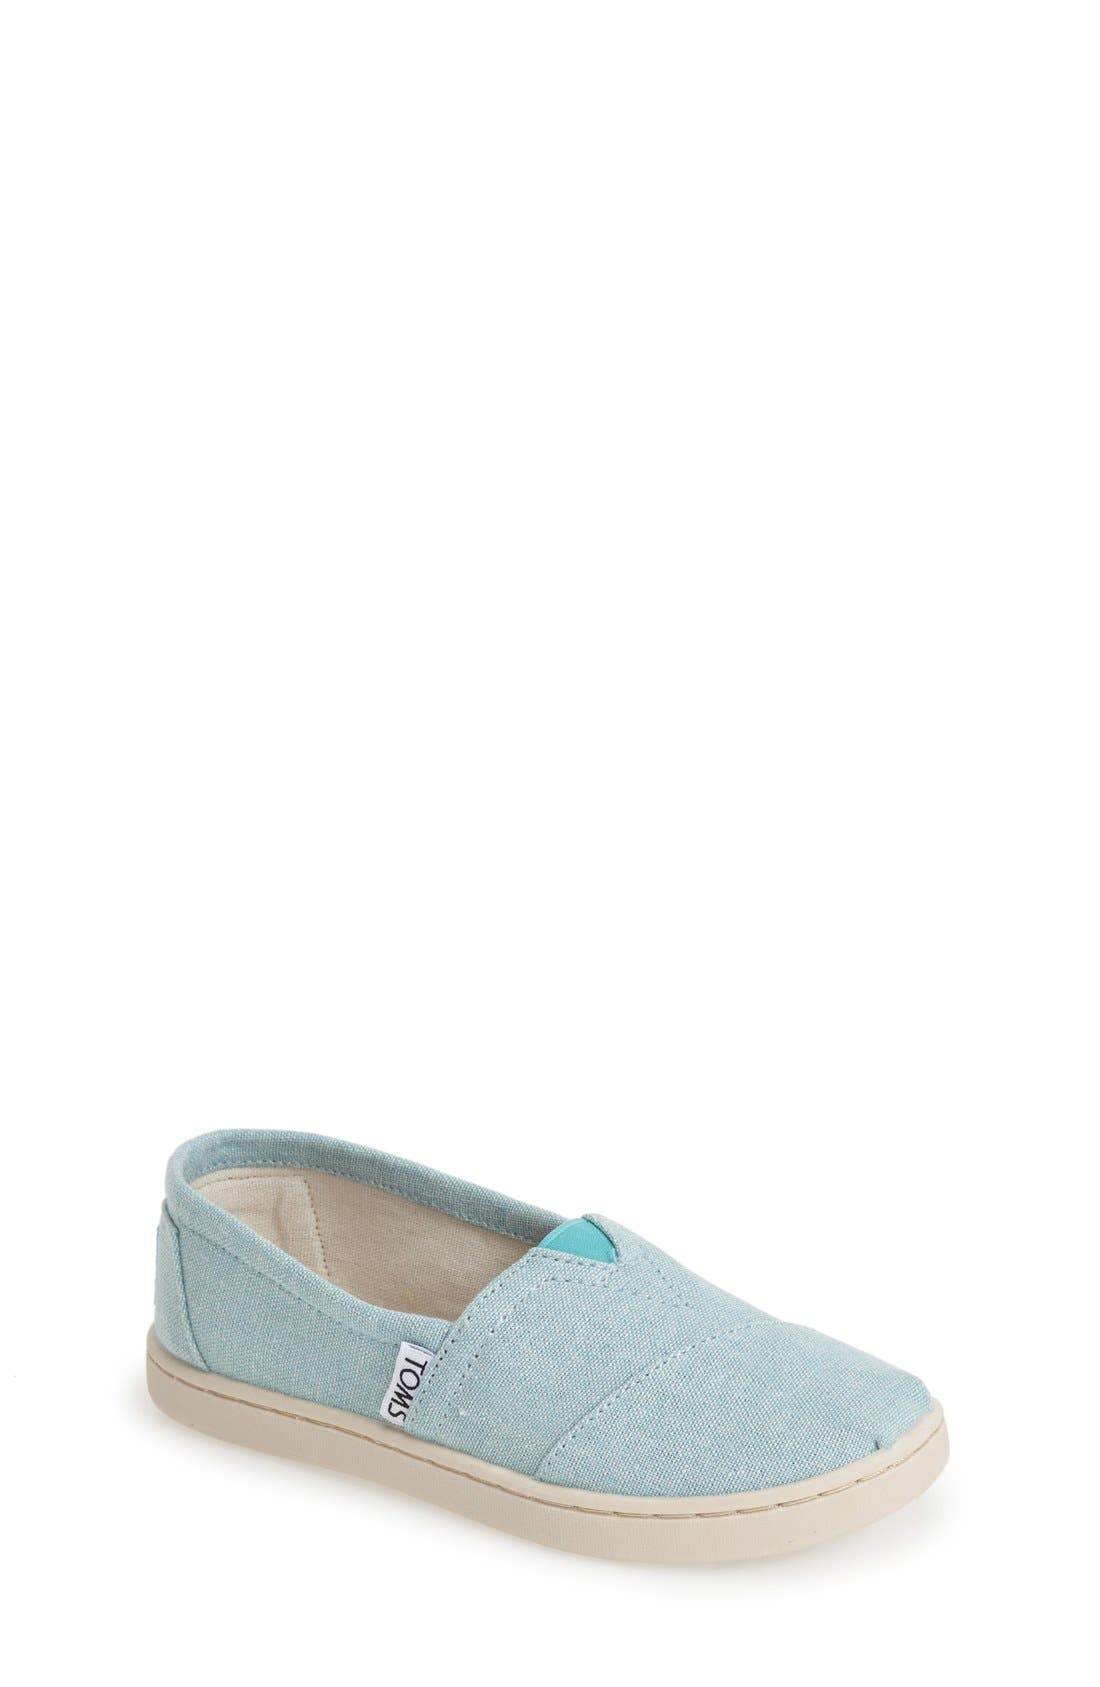 Alternate Image 1 Selected - TOMS 'Classic Youth - Chambray' Slip-On (Toddler, Little Kid & Big Kid)